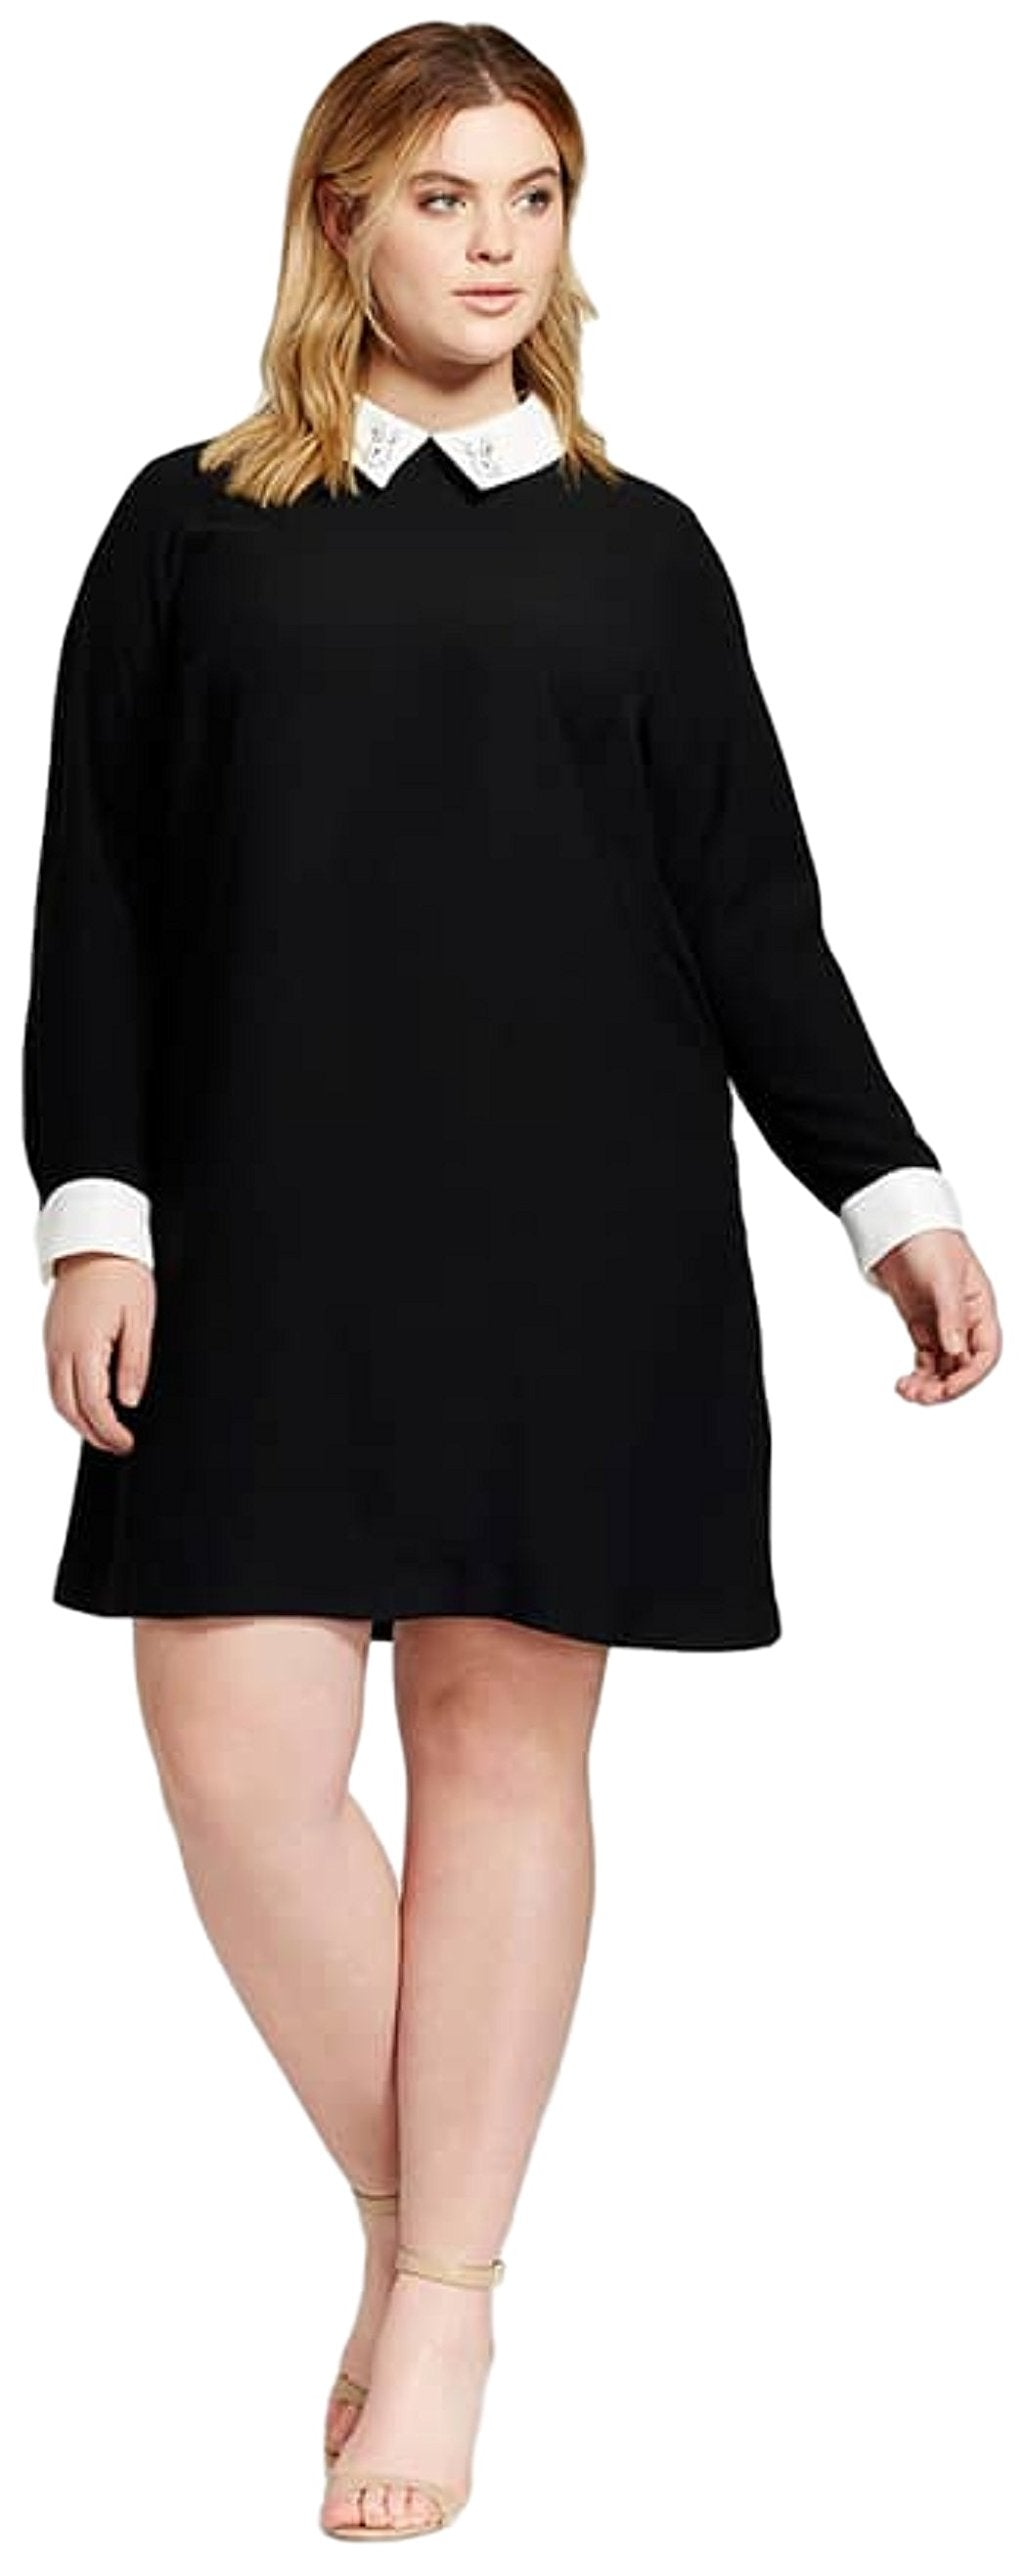 Victoria Beckham Women's Shift Dress with Bunny Collar (1X, Black)